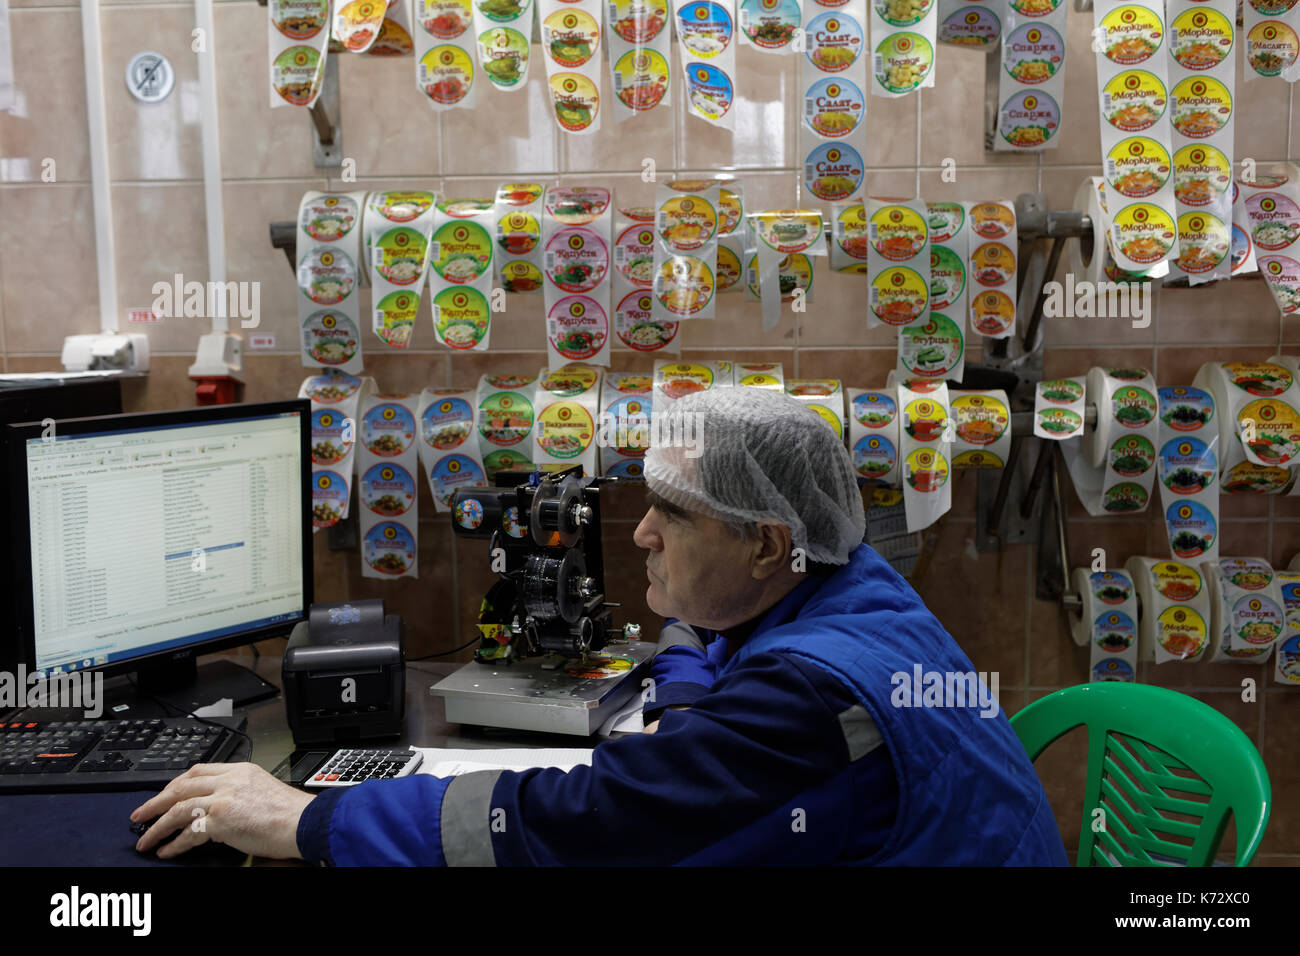 St. Petersburg, Russia - February 28, 2017: Worker in the labelling workshop of the food processing plant. The Factory of Homemade Pickles participate - Stock Image